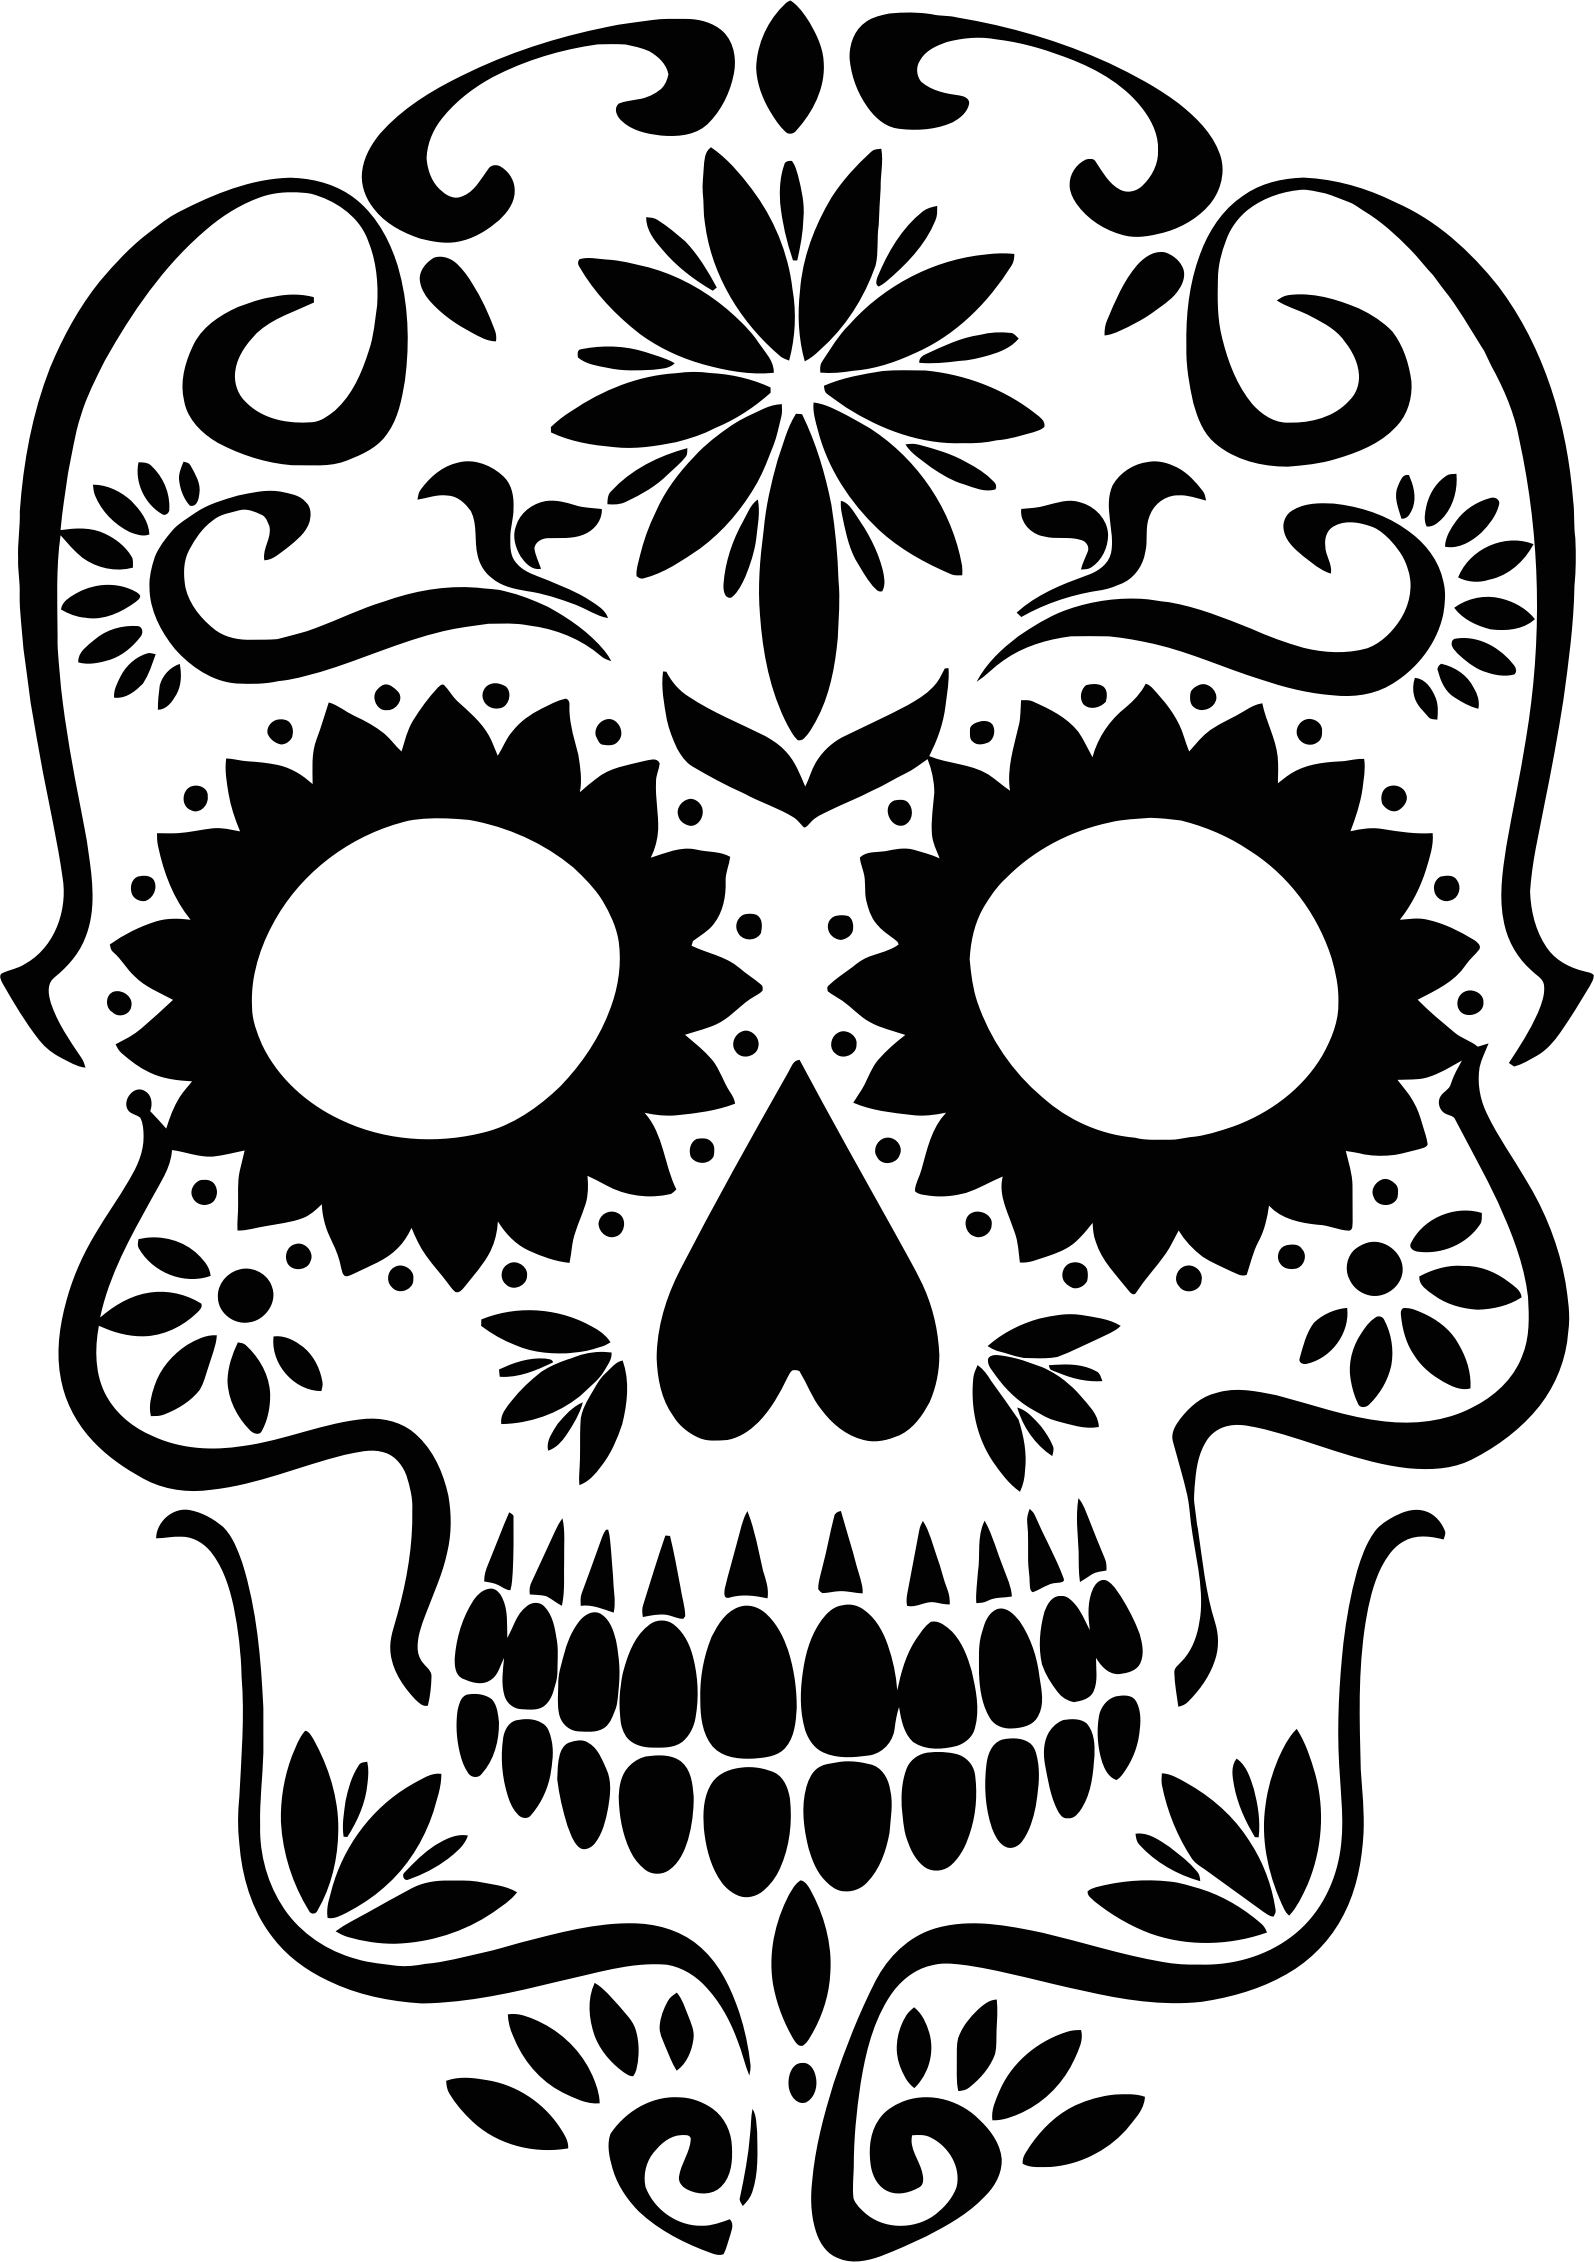 clipart royalty free download Silhouette big image png. Sugar skull clipart